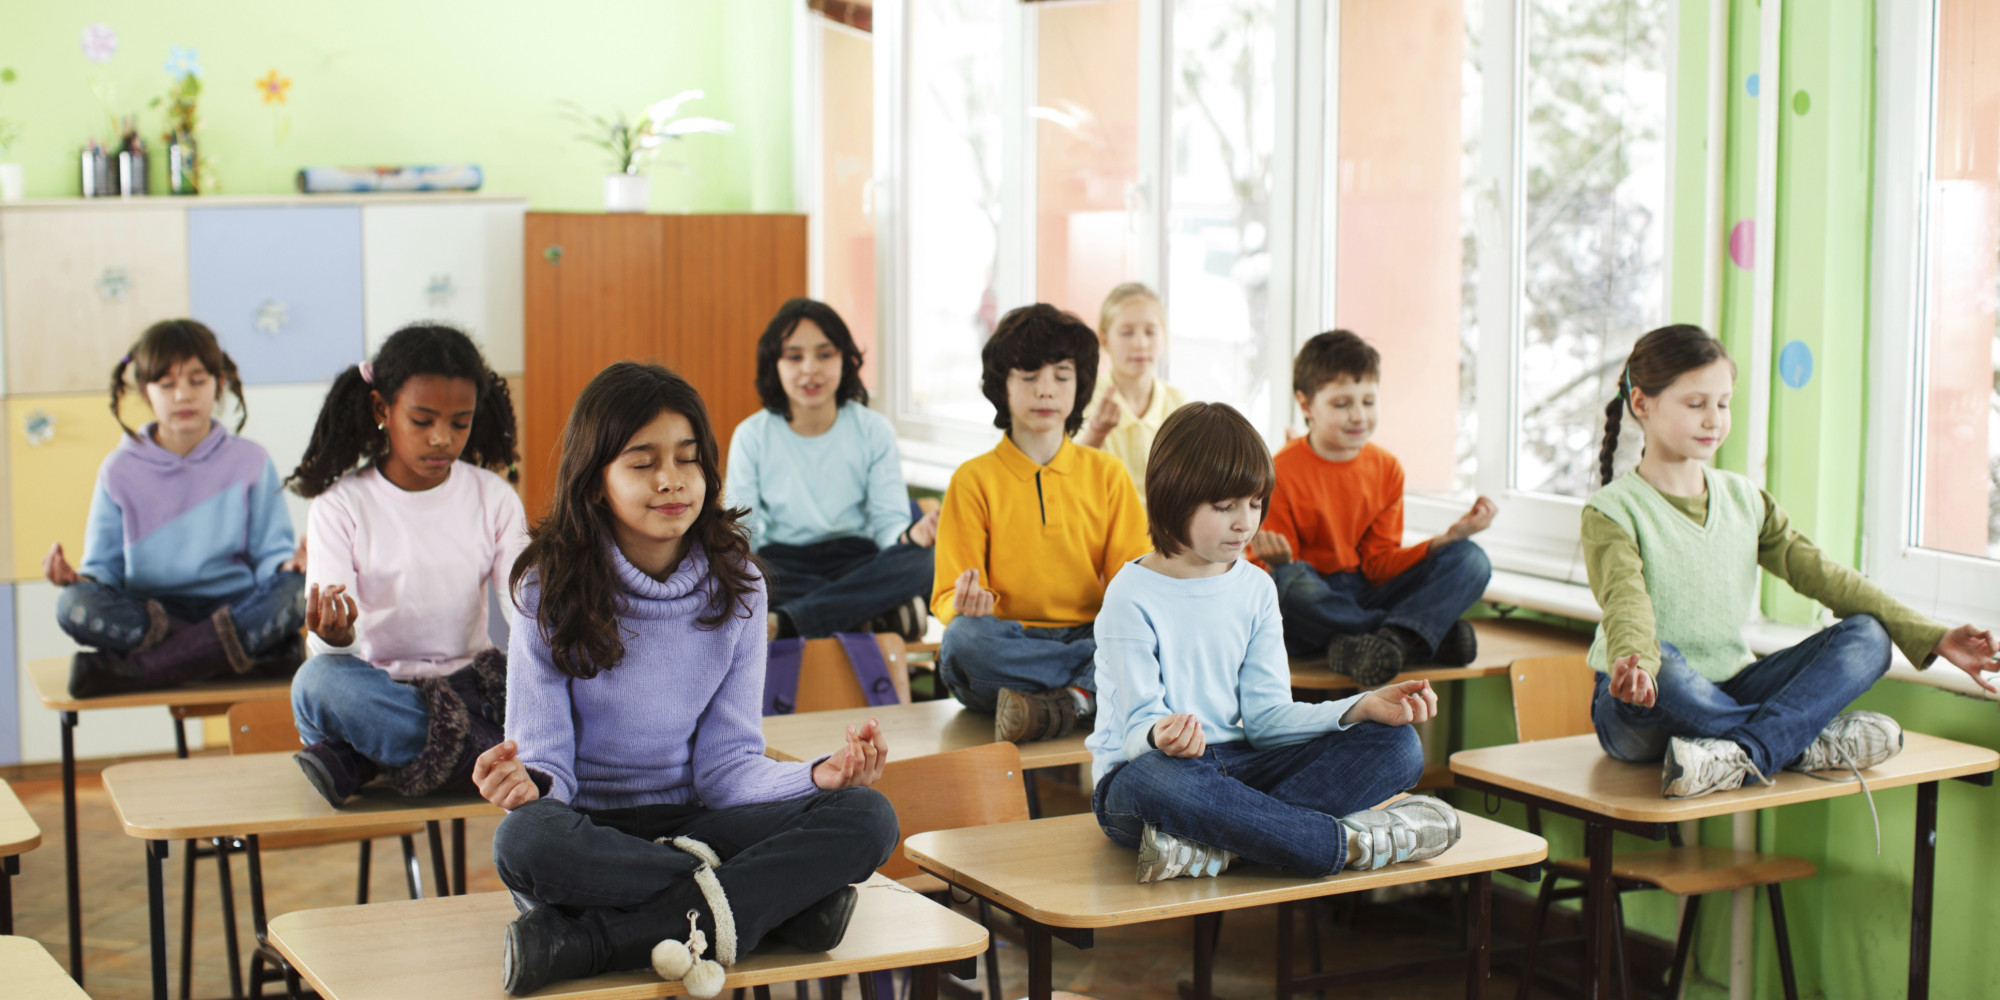 4 myths of meditation in the classrom